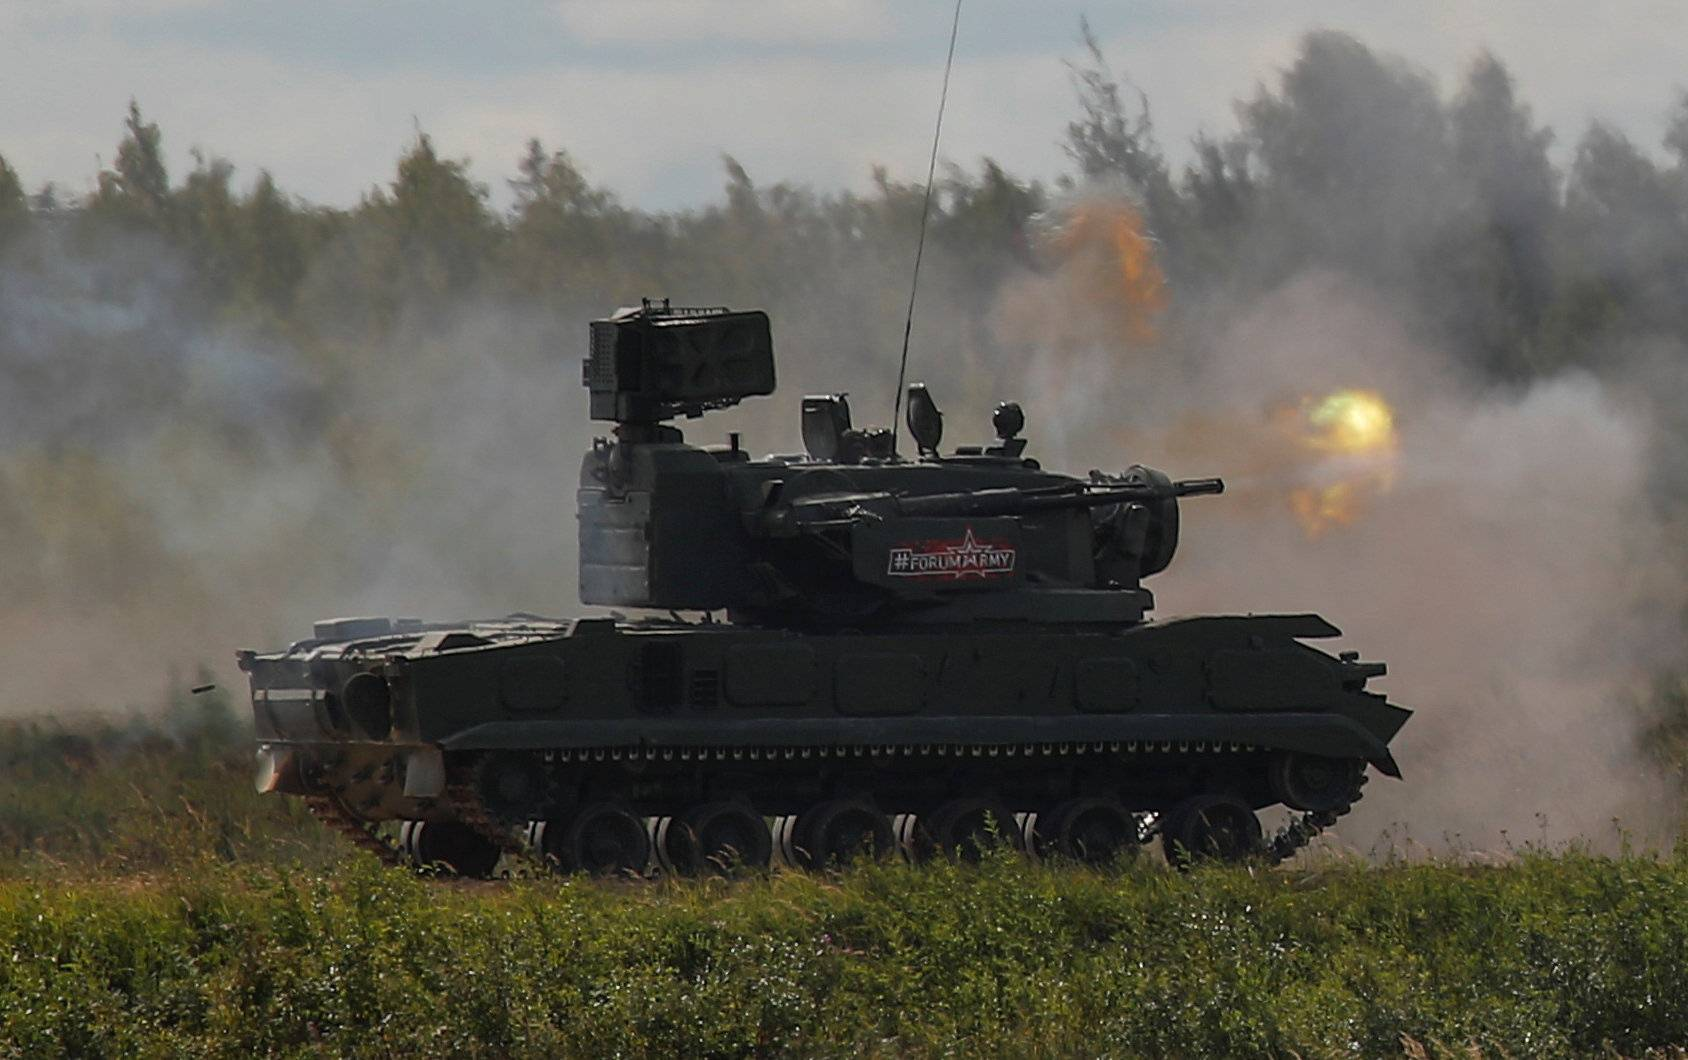 """A Russian 2K22 Tunguska anti-aircraft vehicle fires during a demonstration at the annual international military-technical forum """"ARMY"""" in Alabino"""